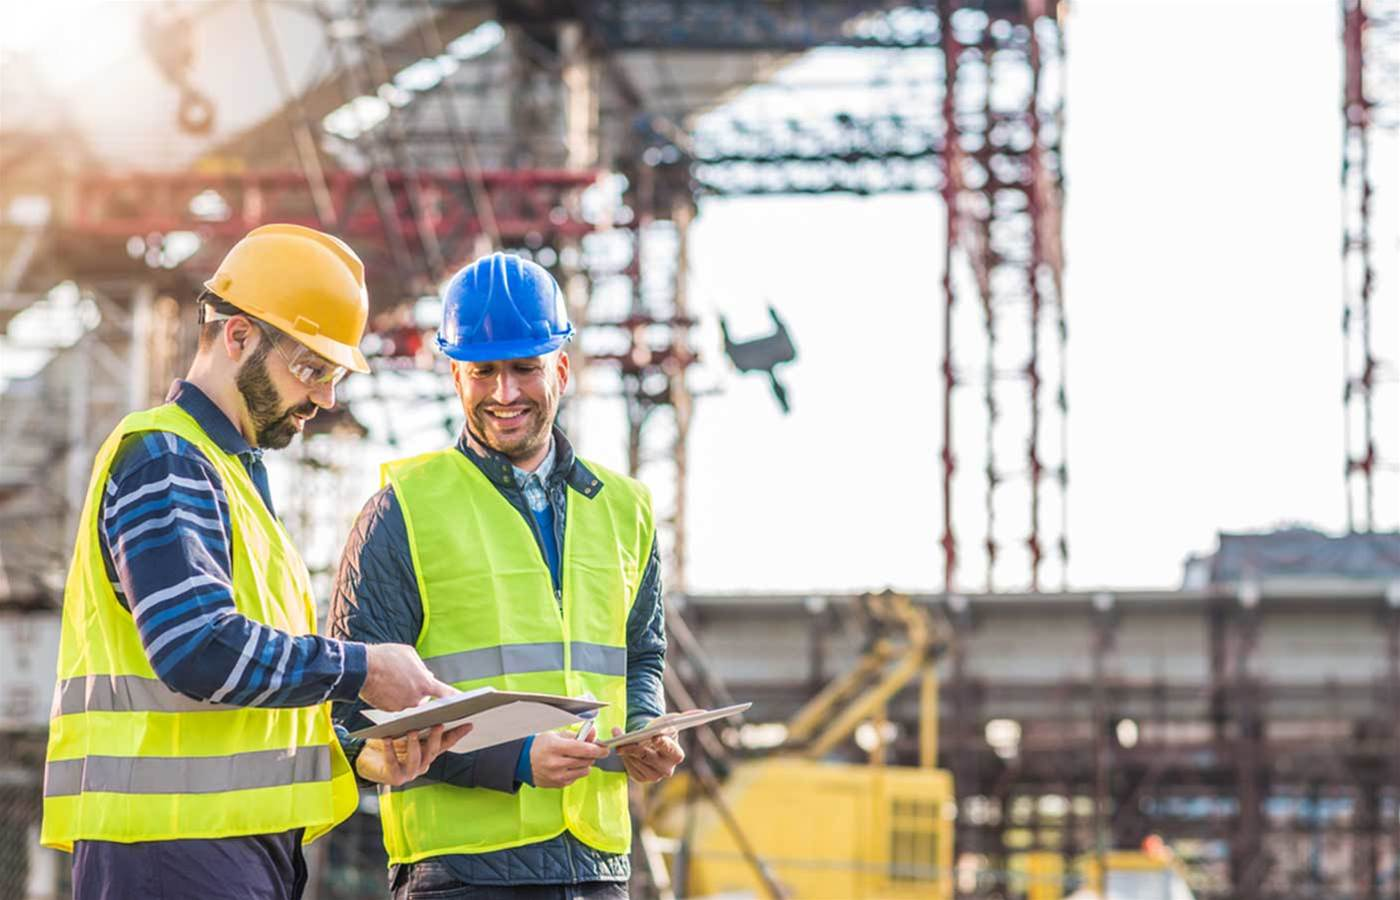 Melbourne software firm QA Software acquired by US construction giant Kiewit subsidiary InEight